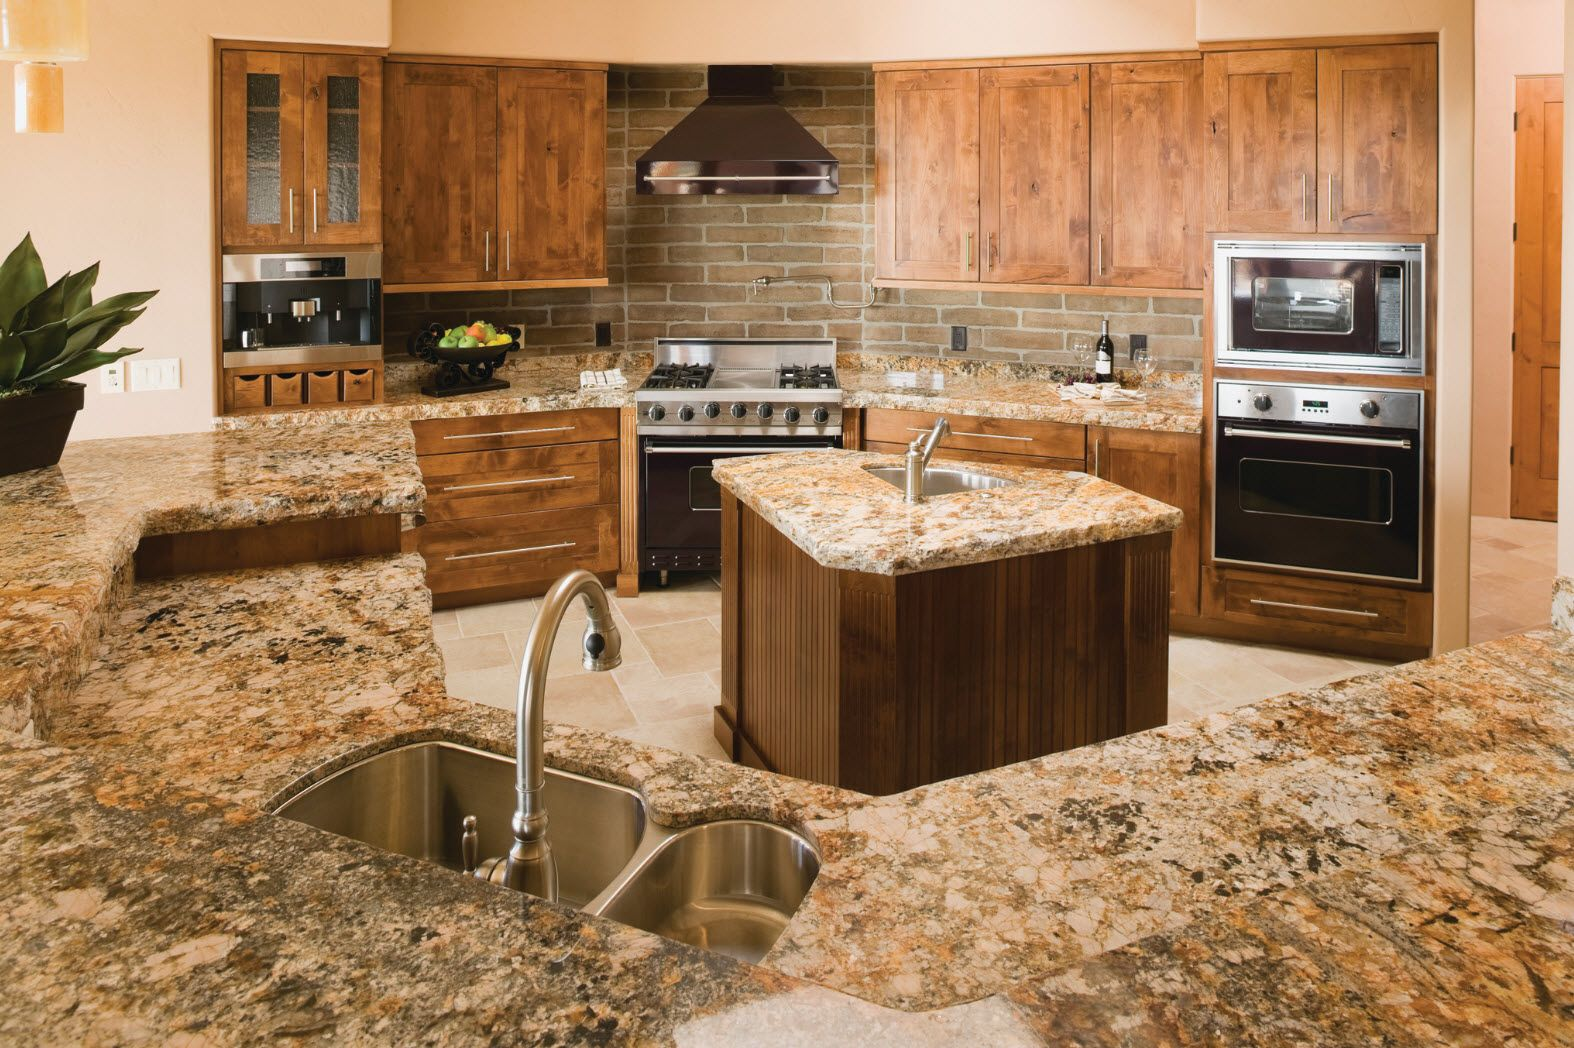 Pin By Buffalo Homefinder On Kitchens With Images Countertops Marble Countertops Kitchen Countertops